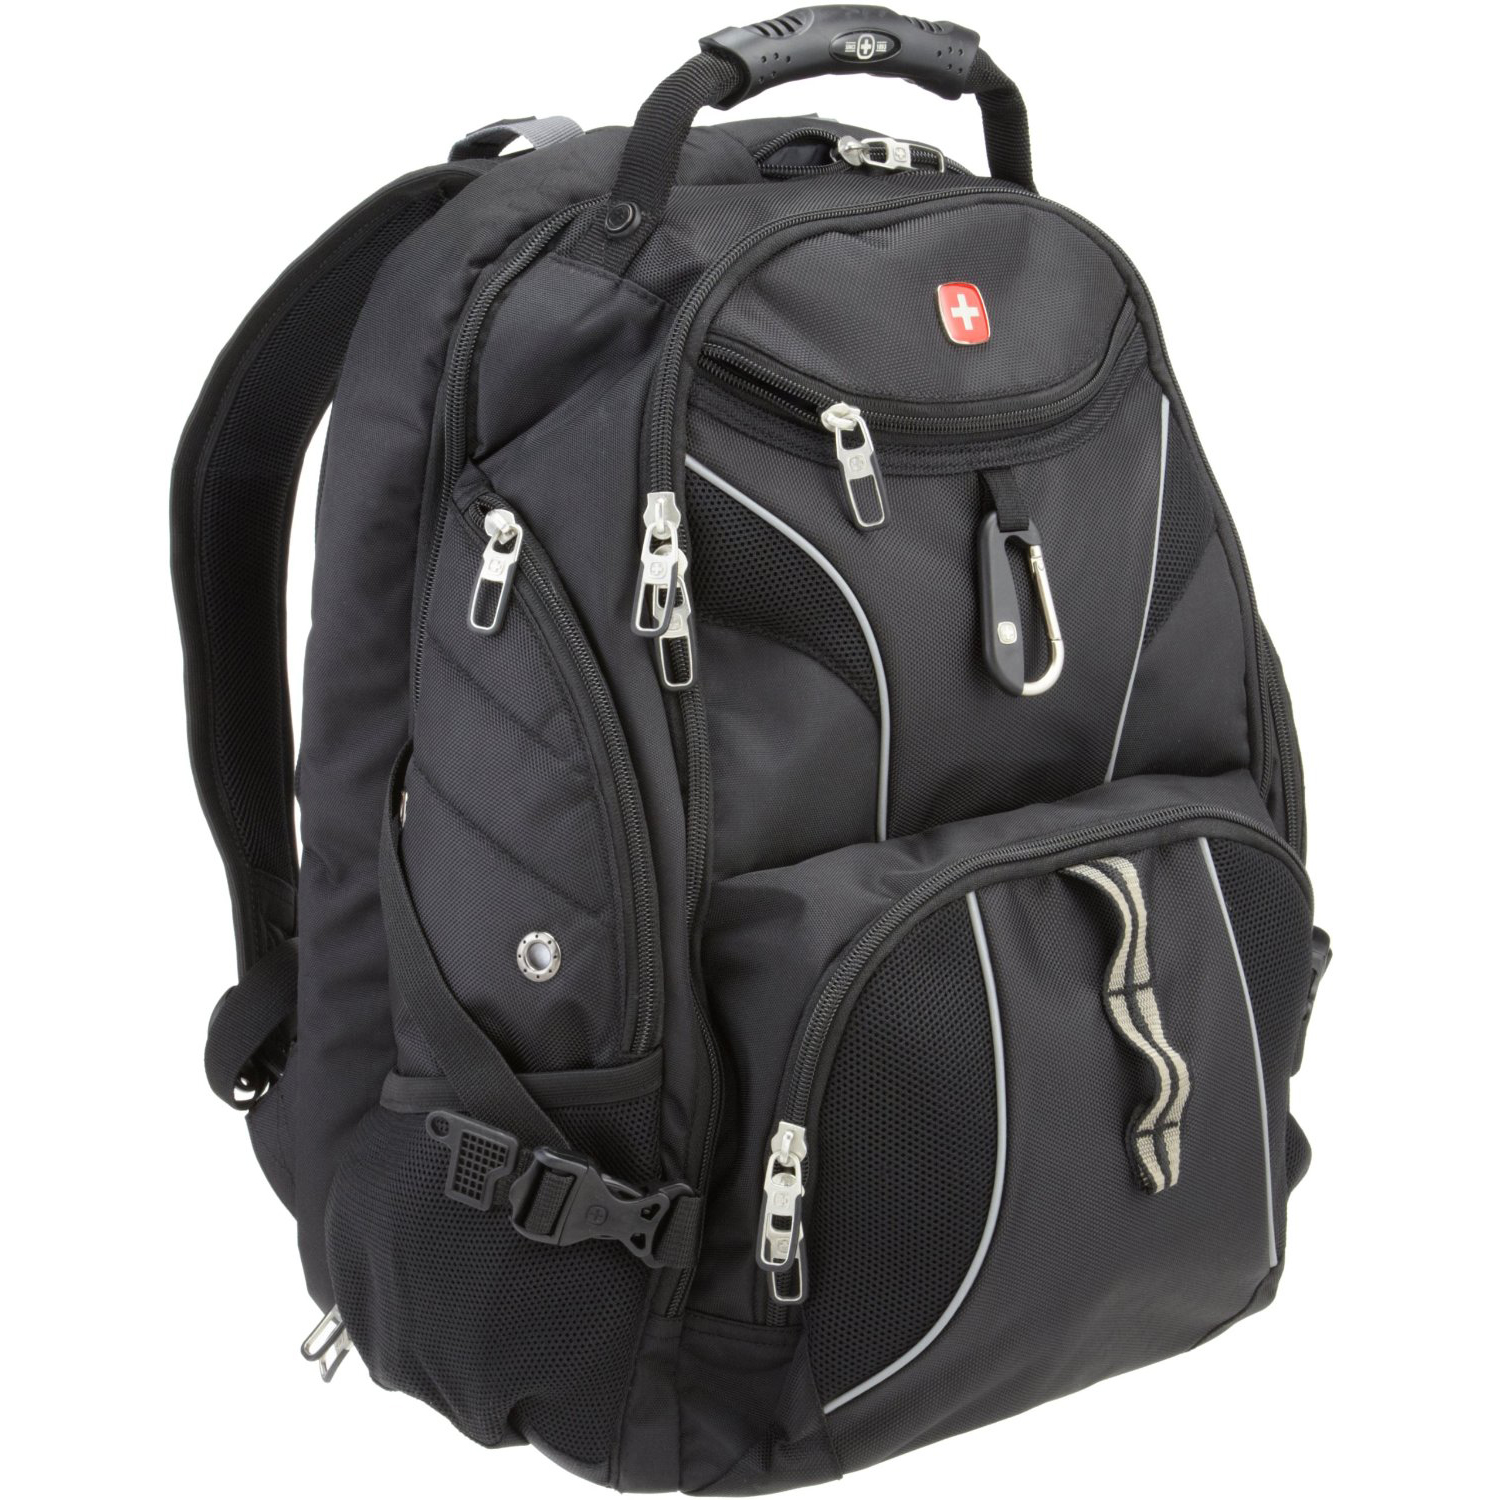 SwissGear SA1923 ScanSmart Backpack vs SwissGear Travel Gear ...